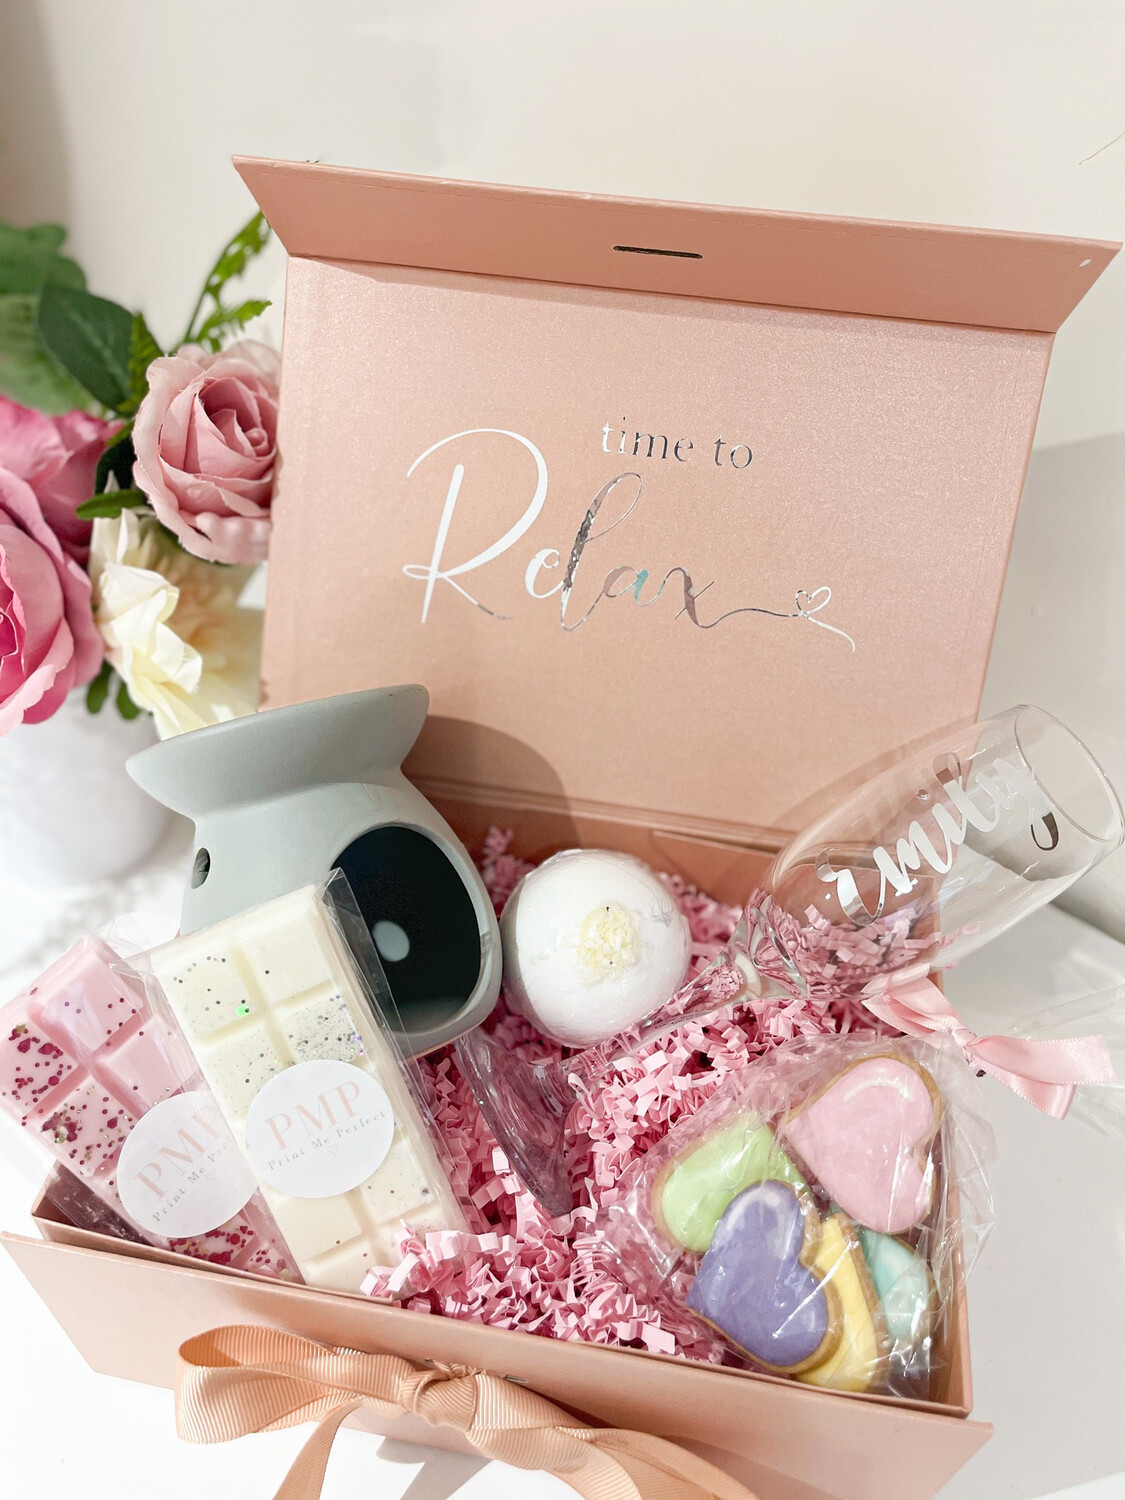 Time To Relax Gift Box